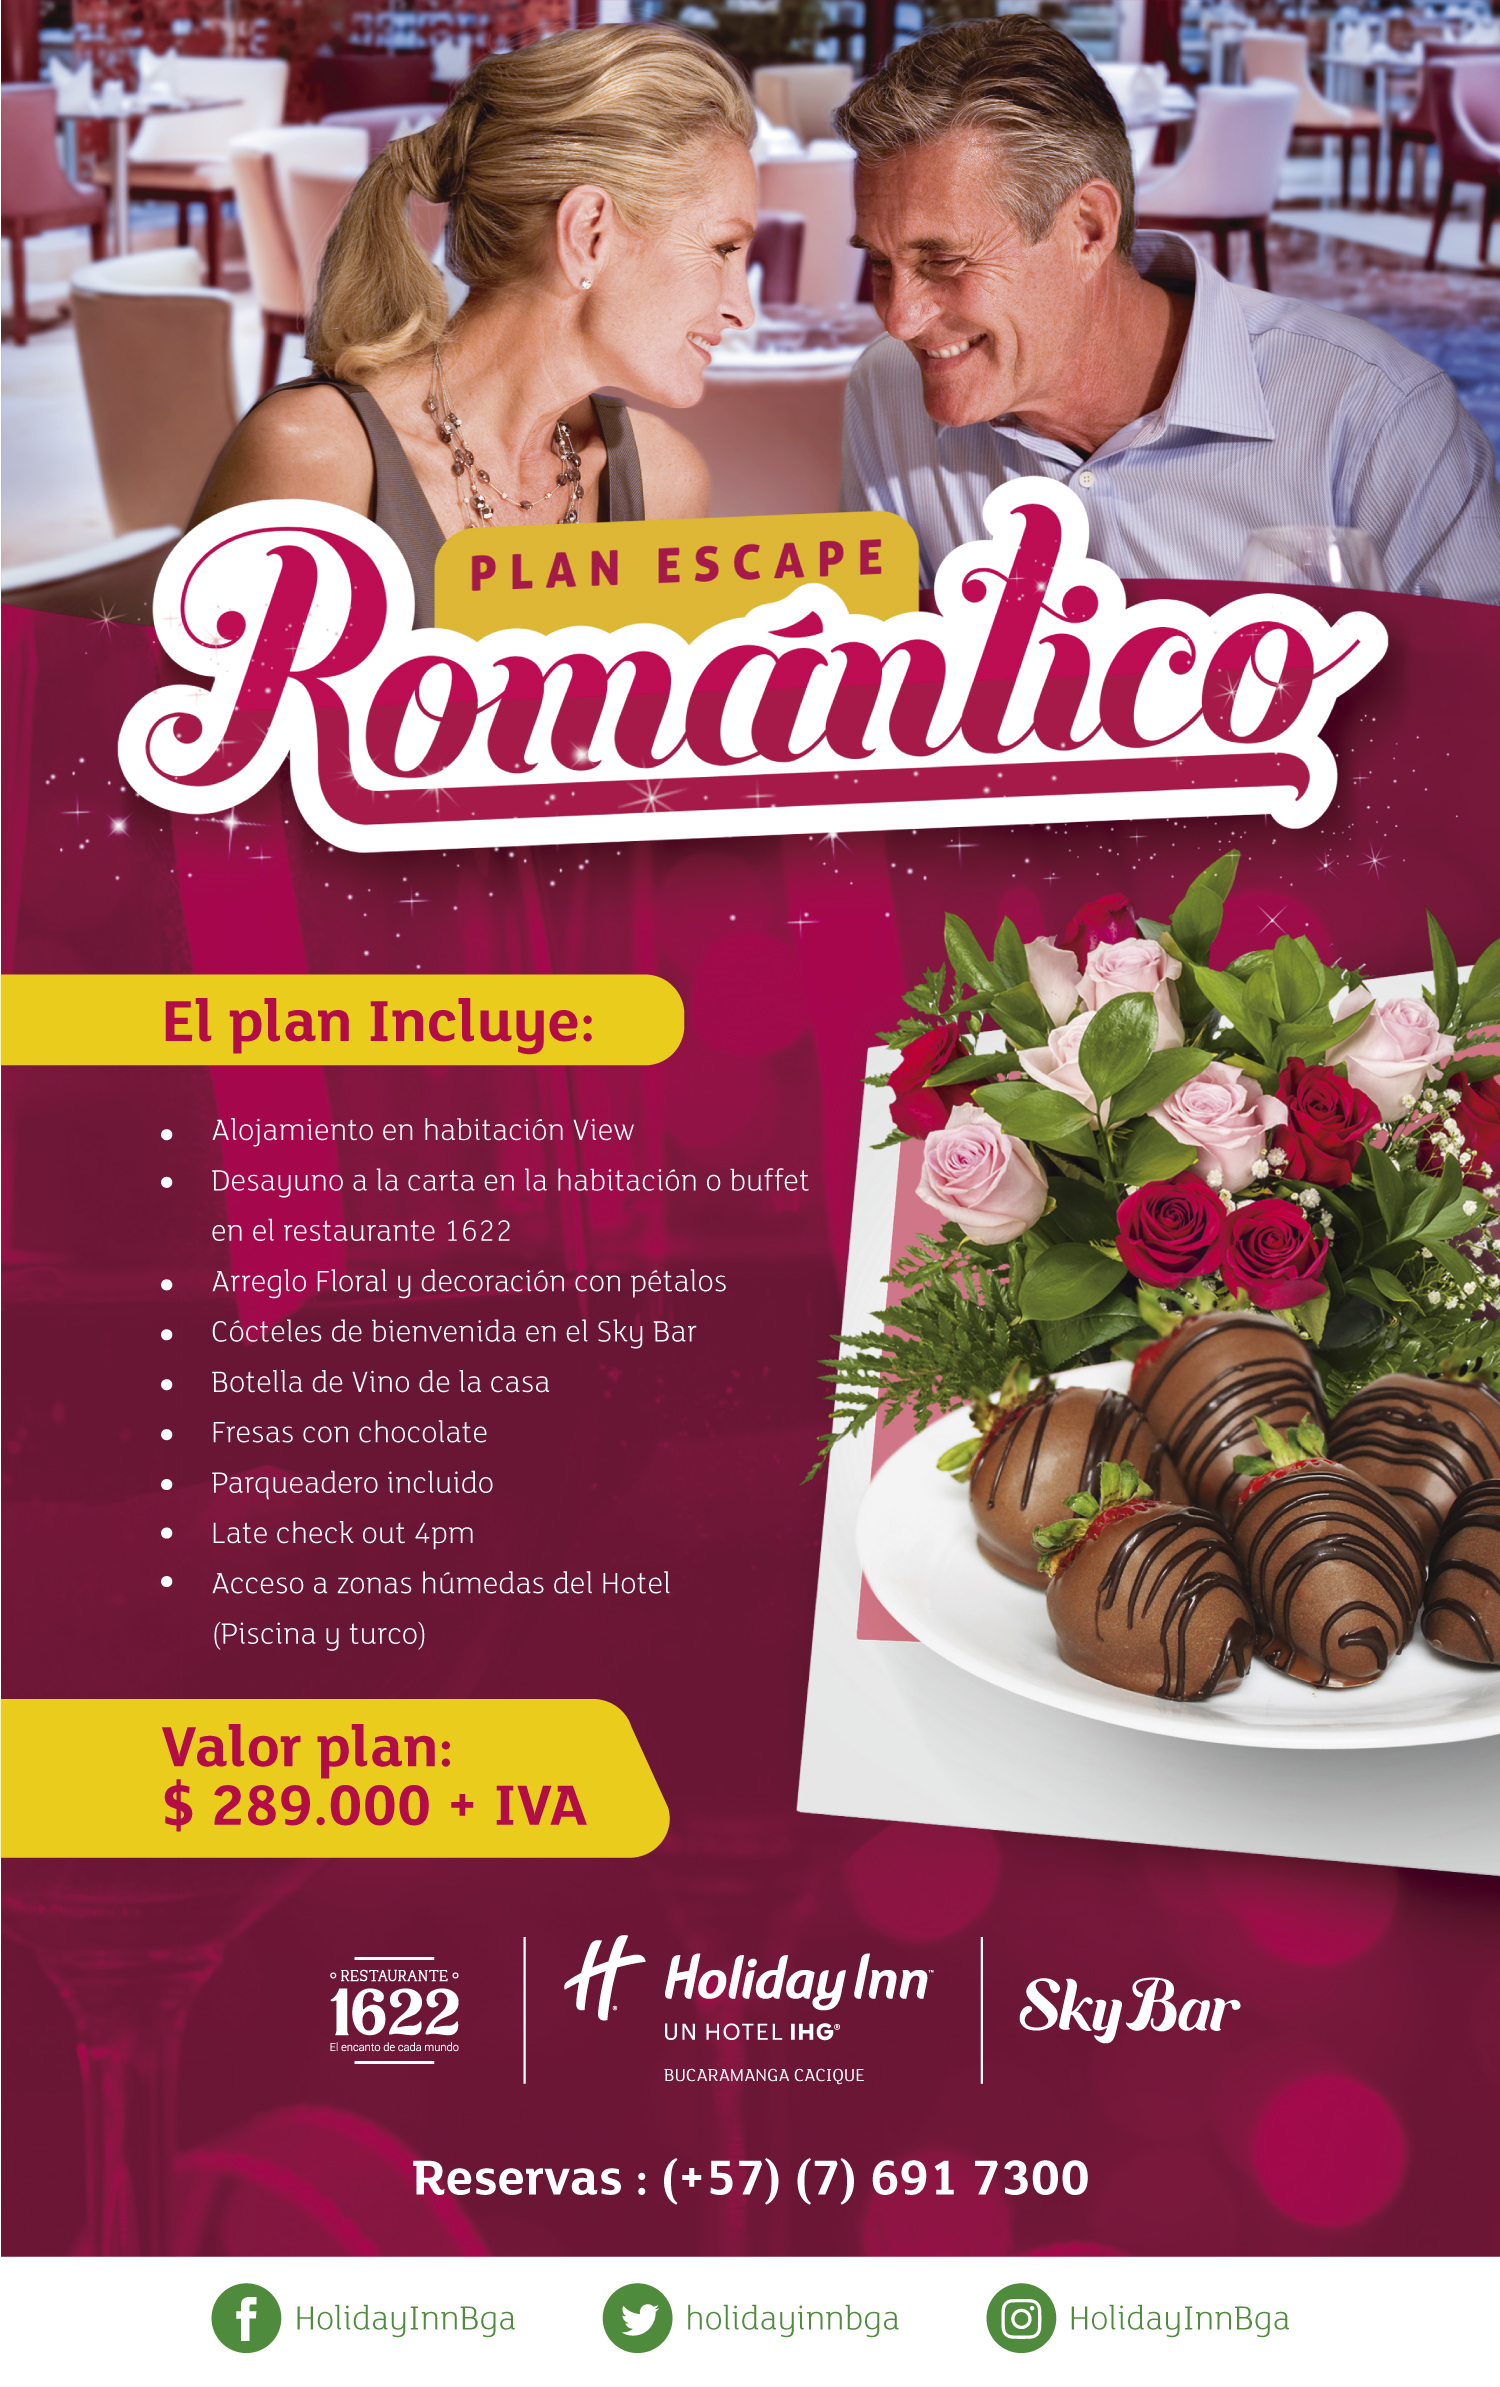 Plan Escape Romántico